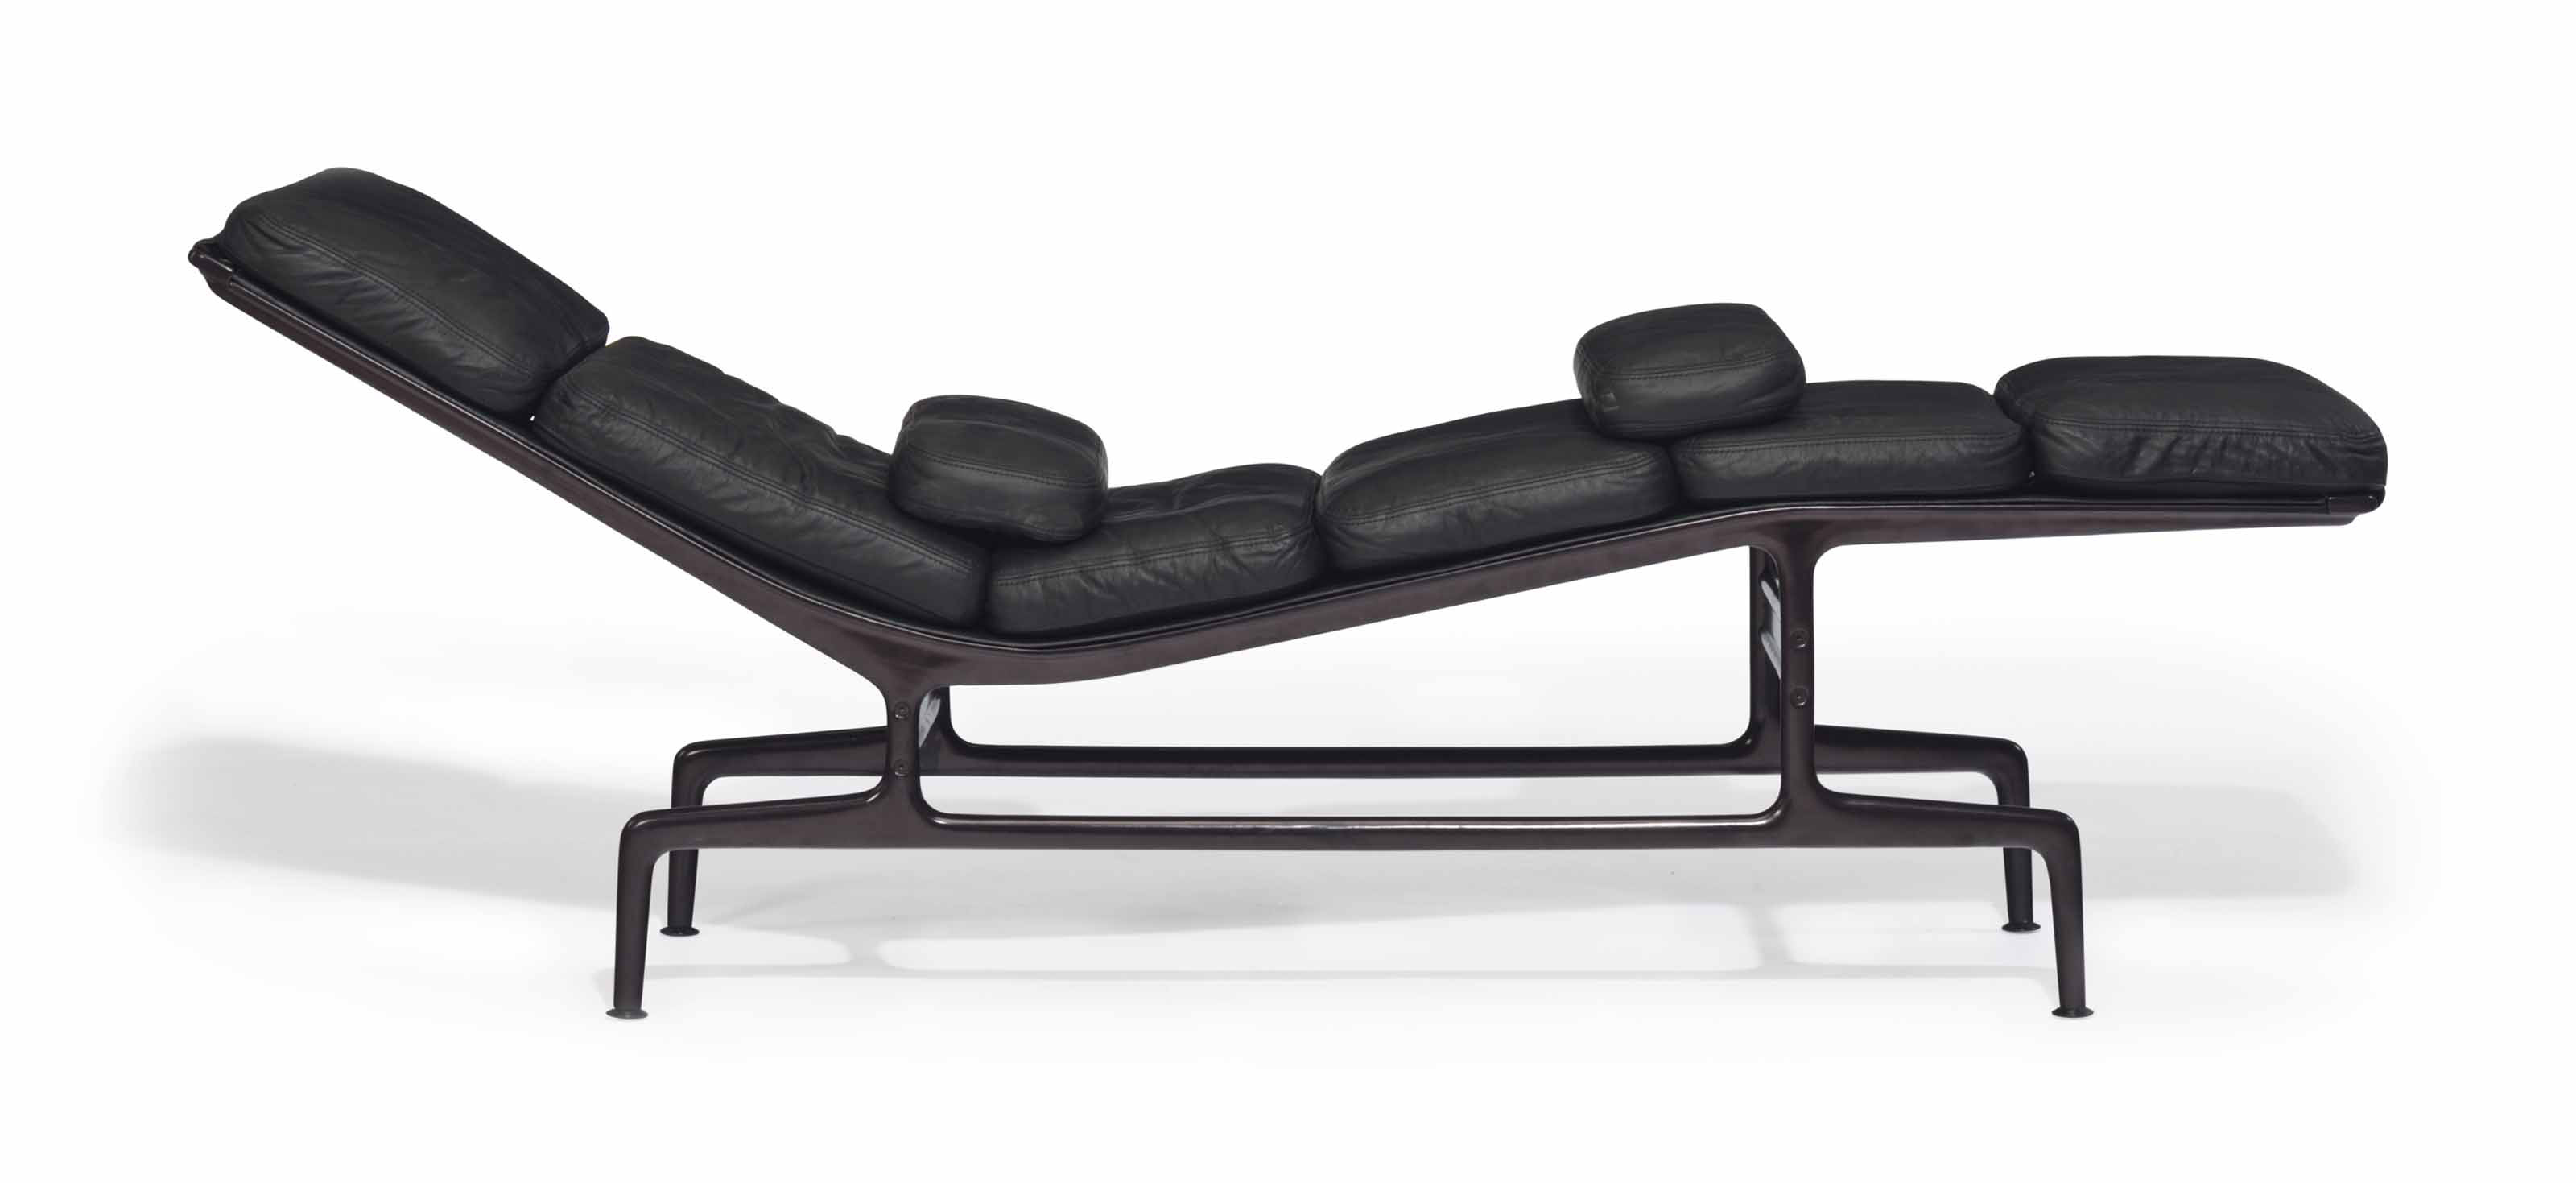 Designer chairs for modern homes christie 39 s for Chaise longue exterieur design